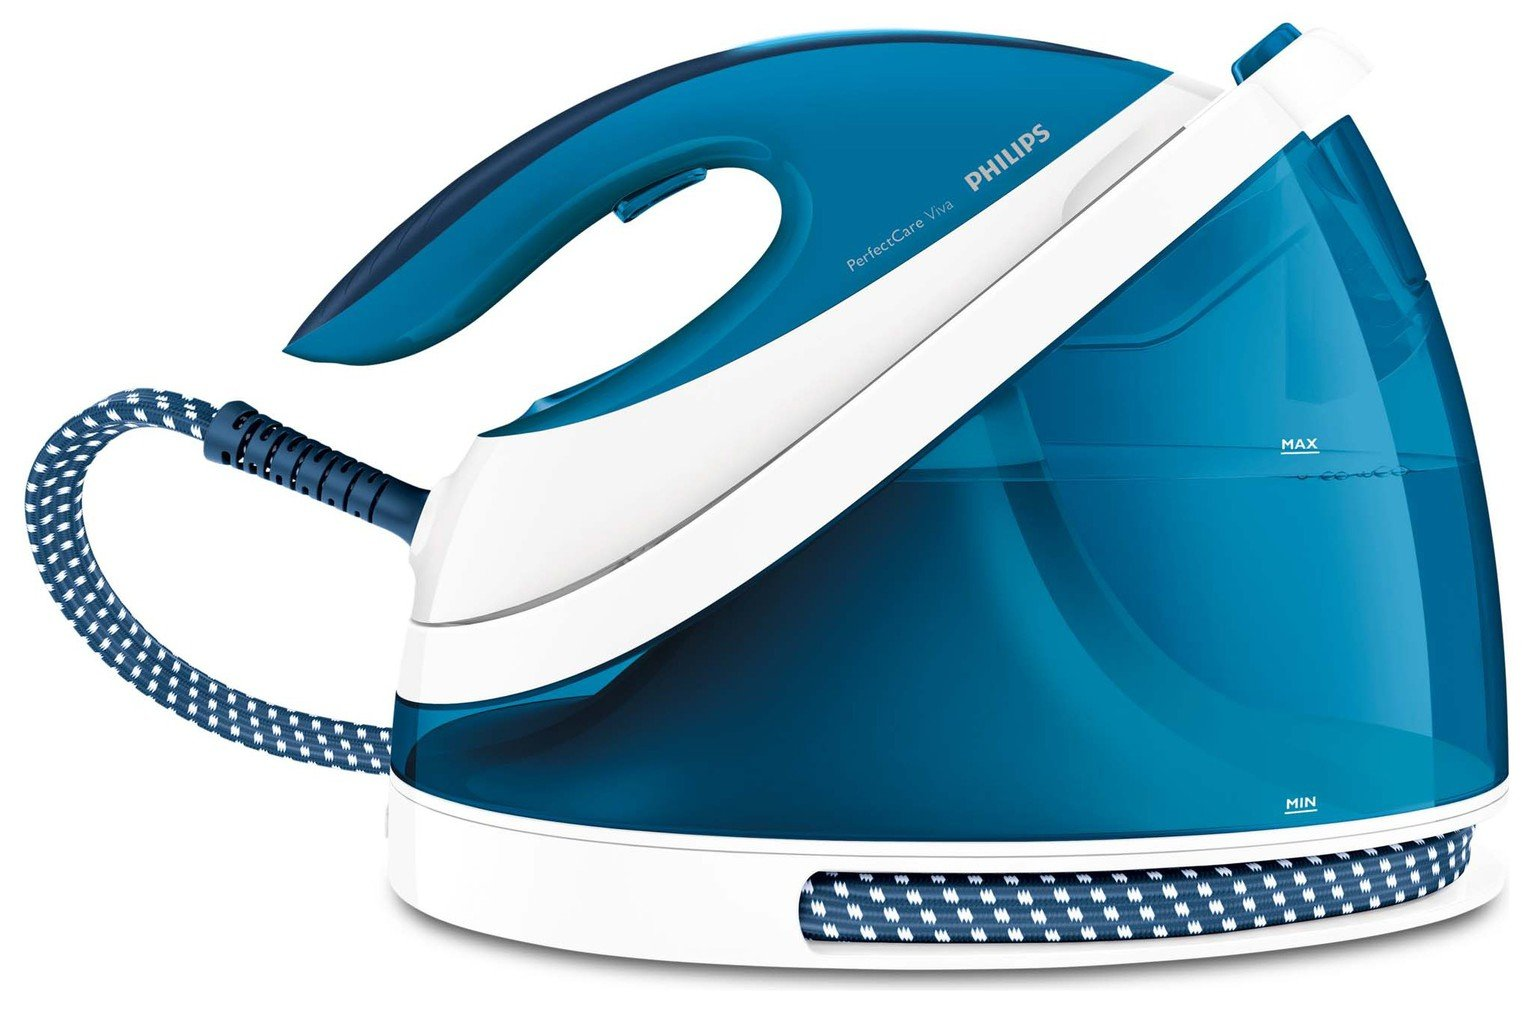 Philips GC7053 PerfectCare Viva OneTemp Steam Gen Iron